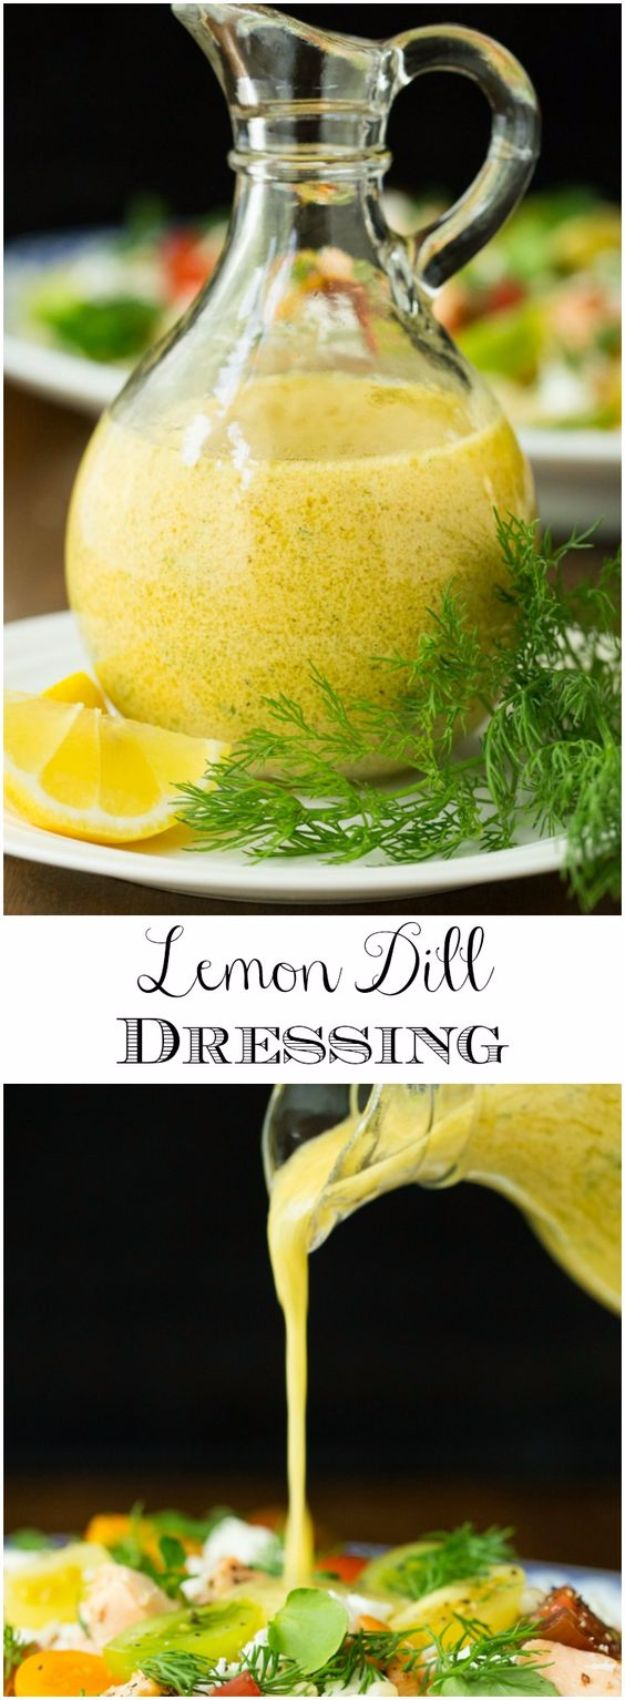 Salad Dressing Recipes - Lemon Dill Dressing - Healthy, Low Calorie and Easy Recipes for Creamy Homeade Dressings - How To Make Vinaigrette, Mango, Greek, Paleo, Balsamic, Ranch, and Italian Copycat Dressings http://diyjoy.com/best-salad-dressing-recipes